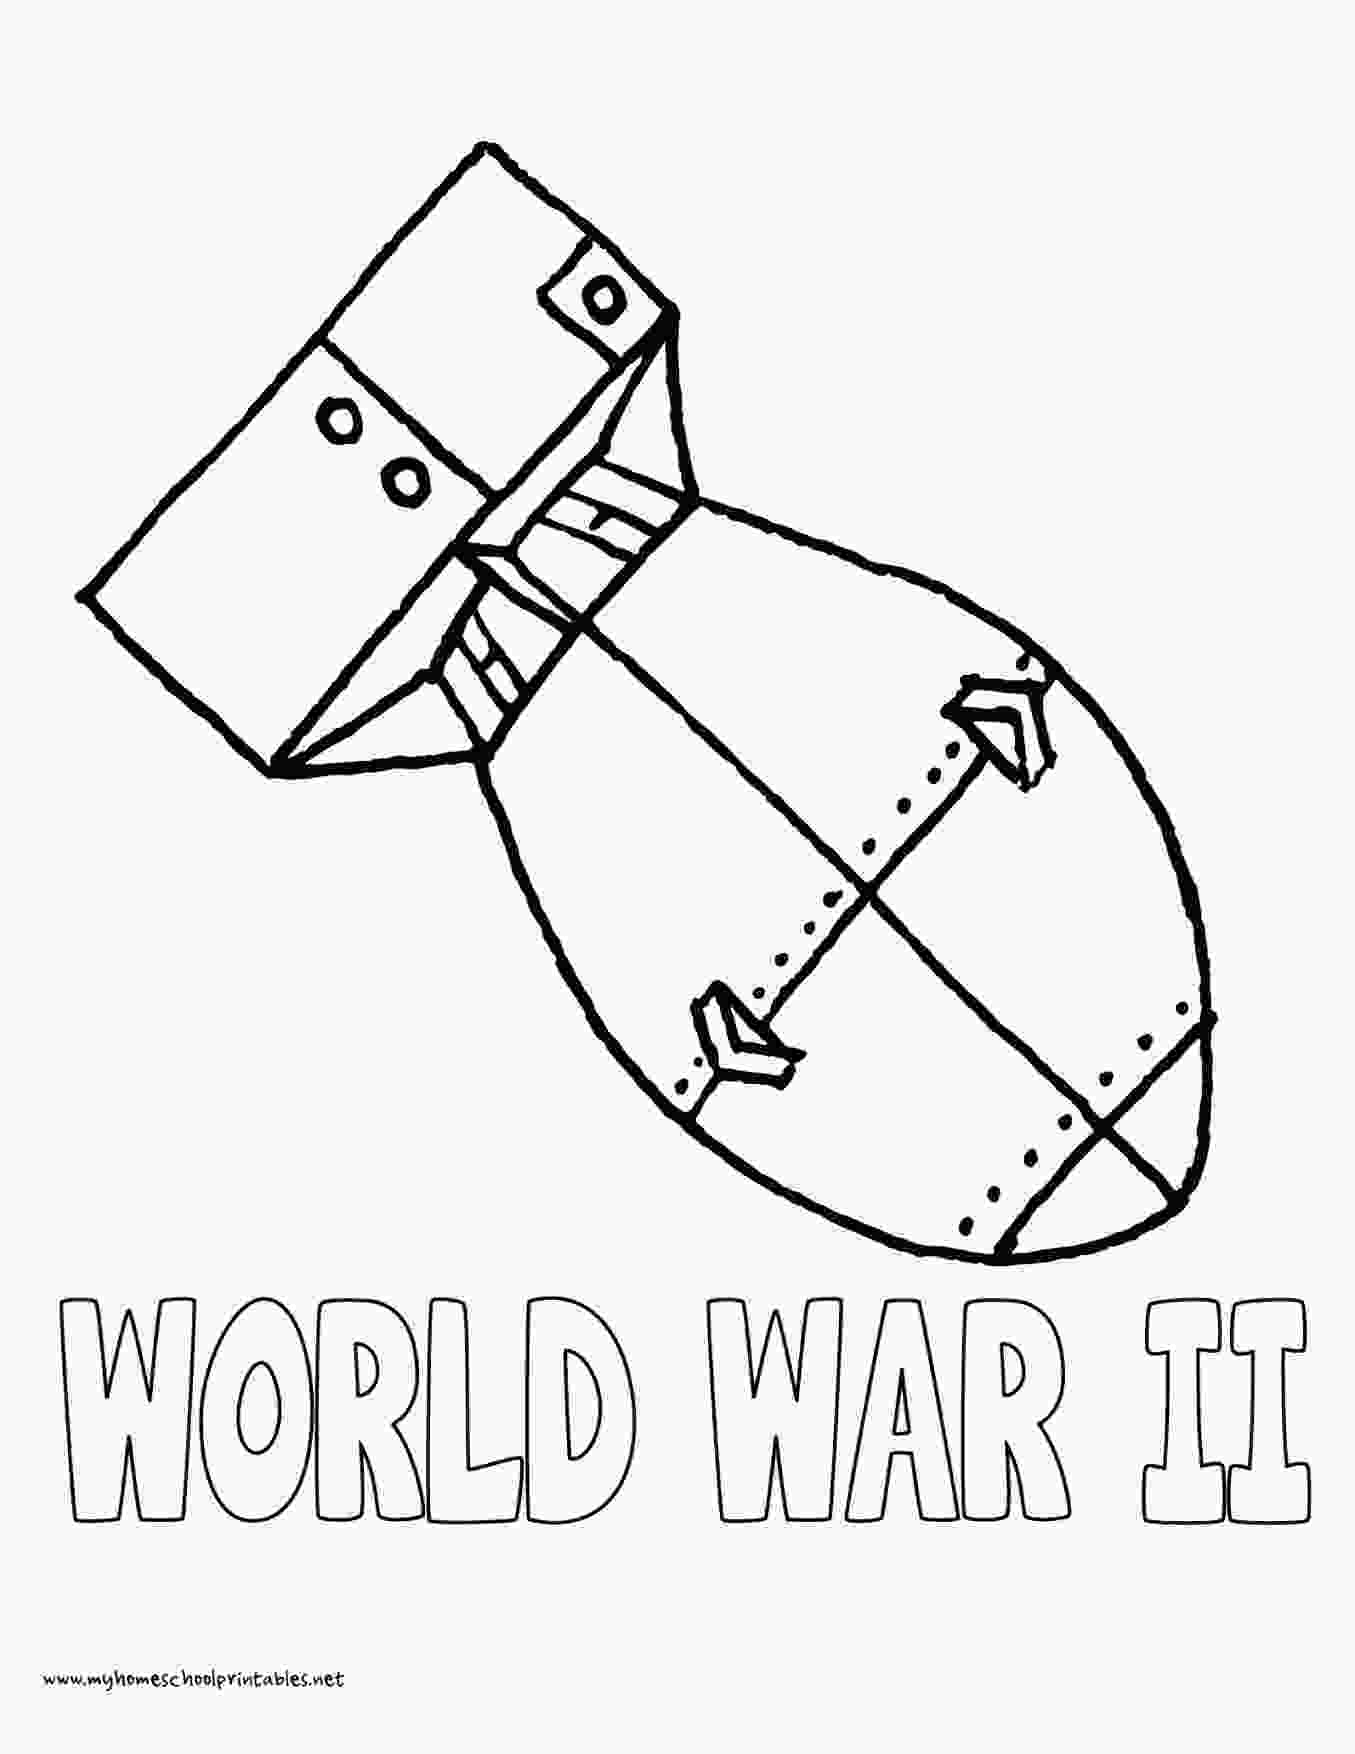 world war 2 coloring pages printable valuable ideas ww2 colouring pictures ww2 evacuee children